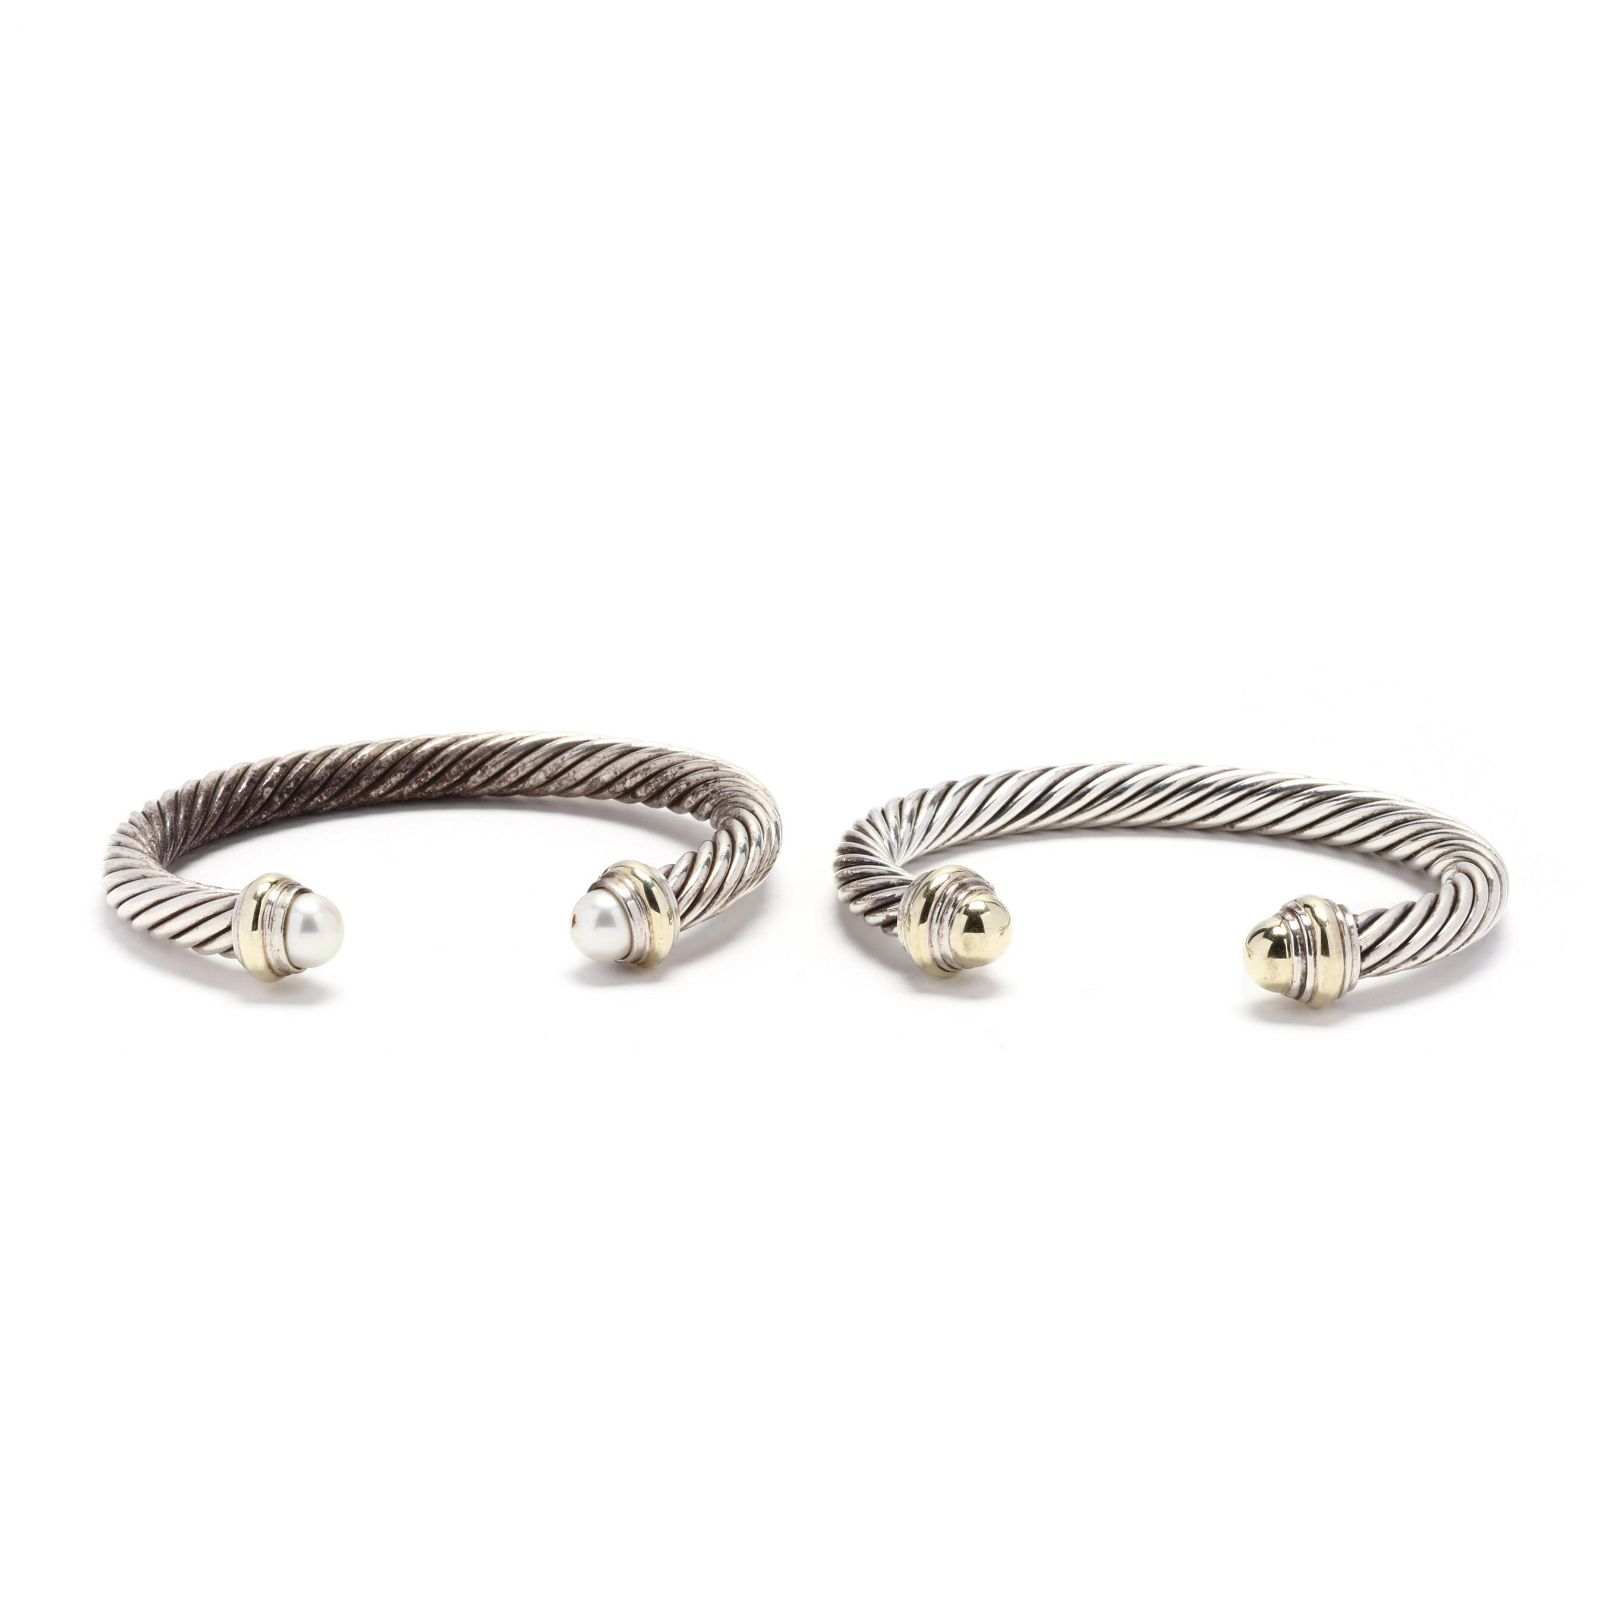 Two Sterling Silver and 14KT Gold Cuff Bracelets, David